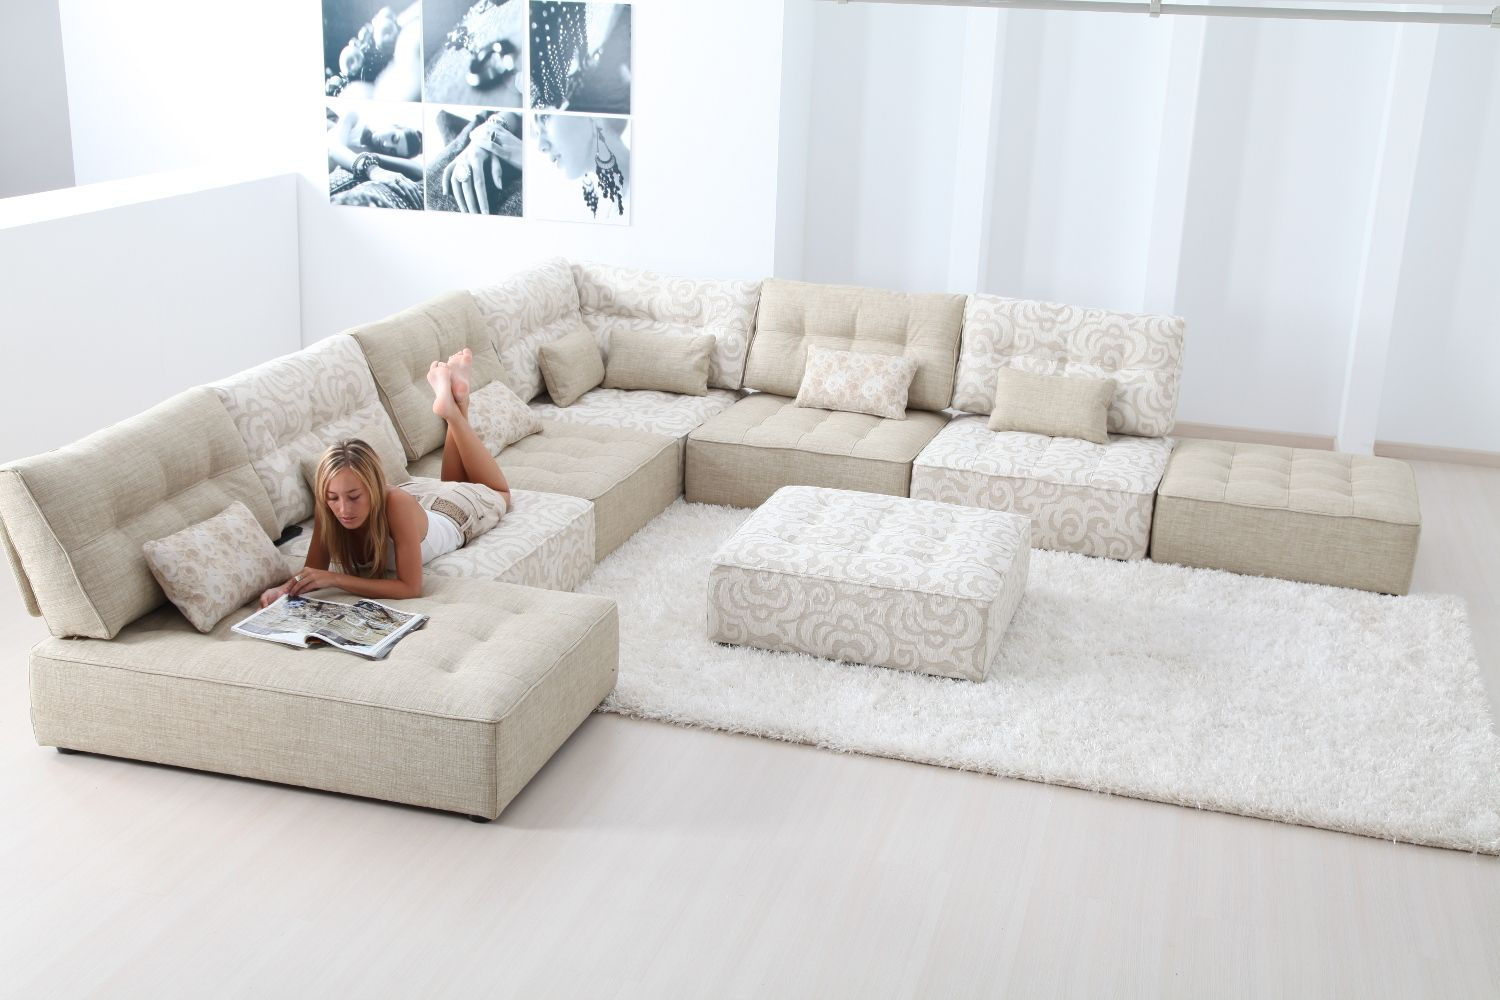 The Fama Arianne Sofa Is A Fun Modern Modular Sofa Design